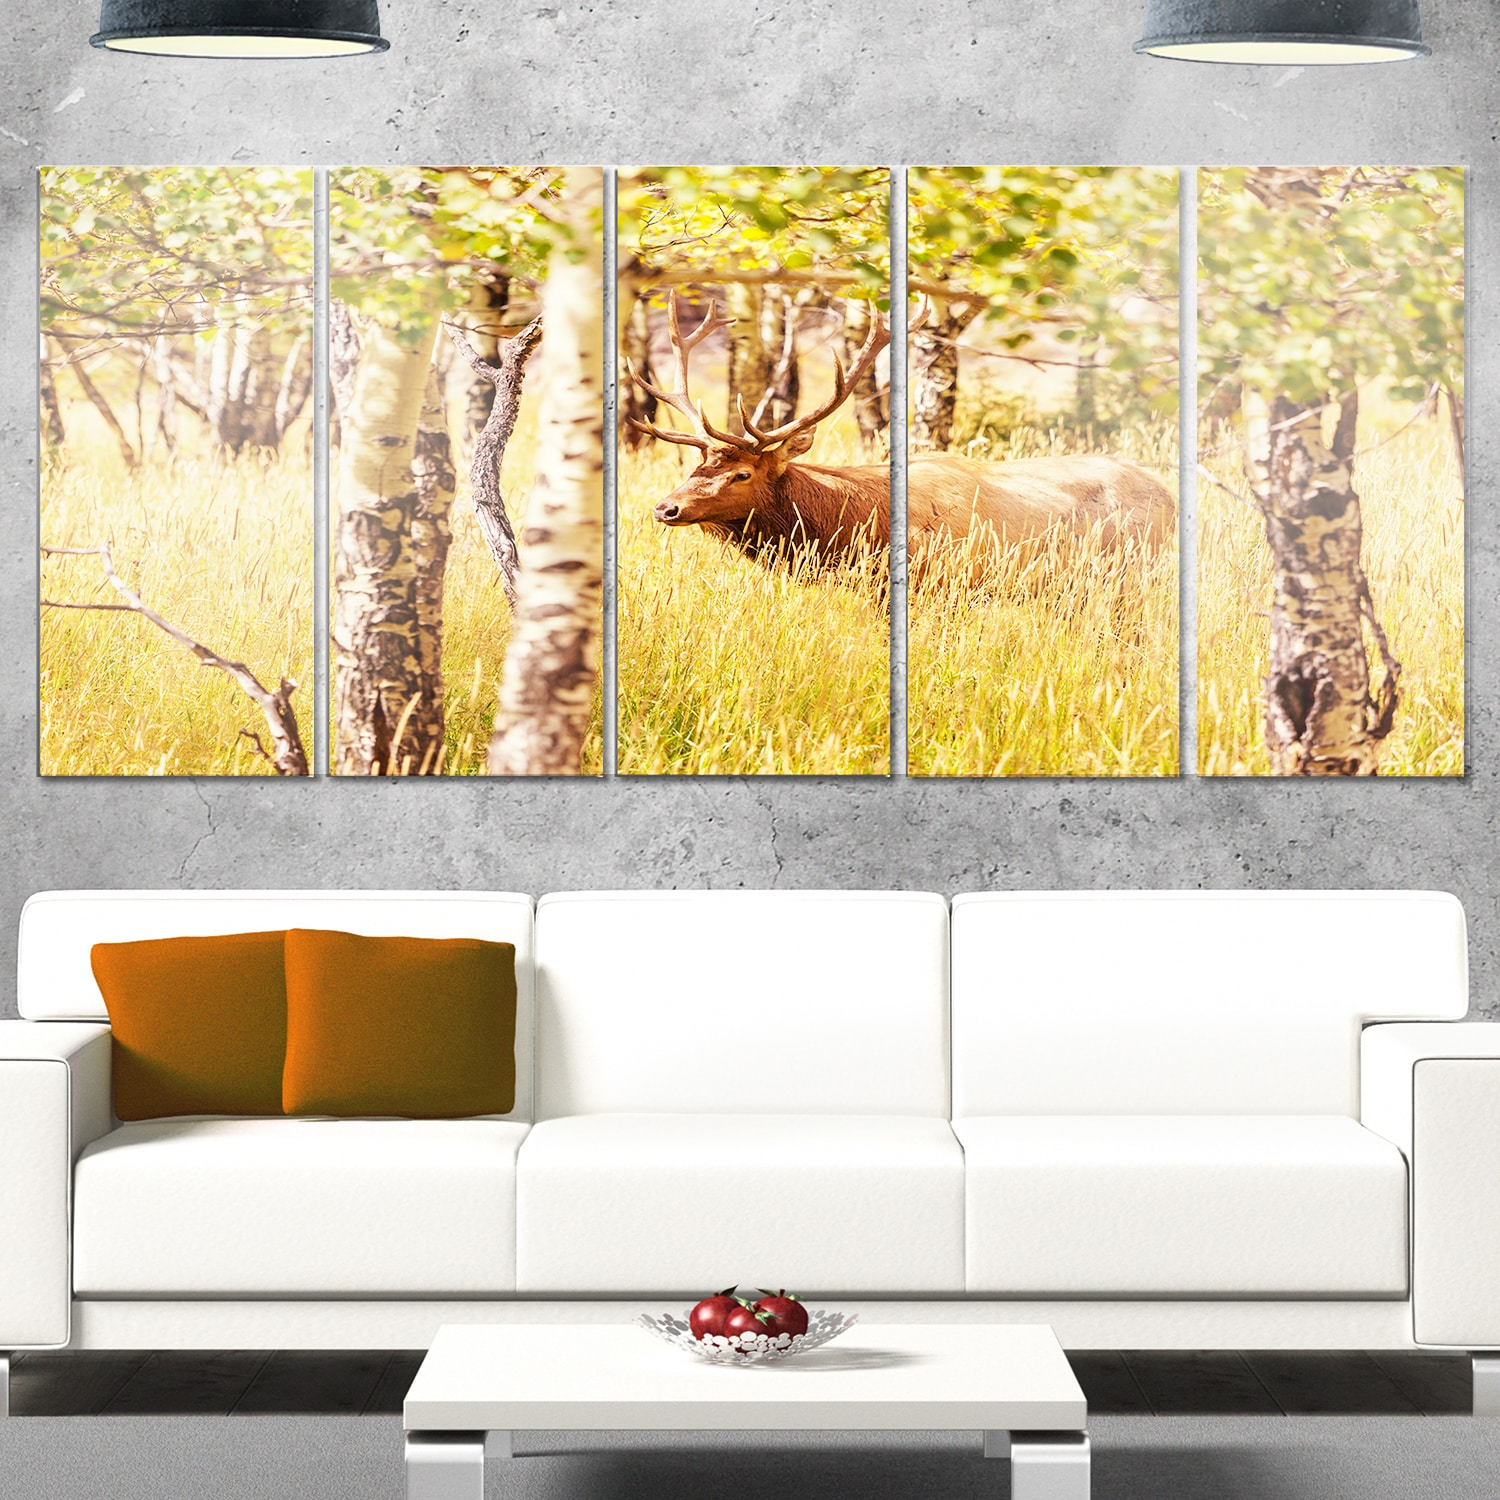 Amazing Tranquil Wall Art Images - All About Wallart - adelgazare.info